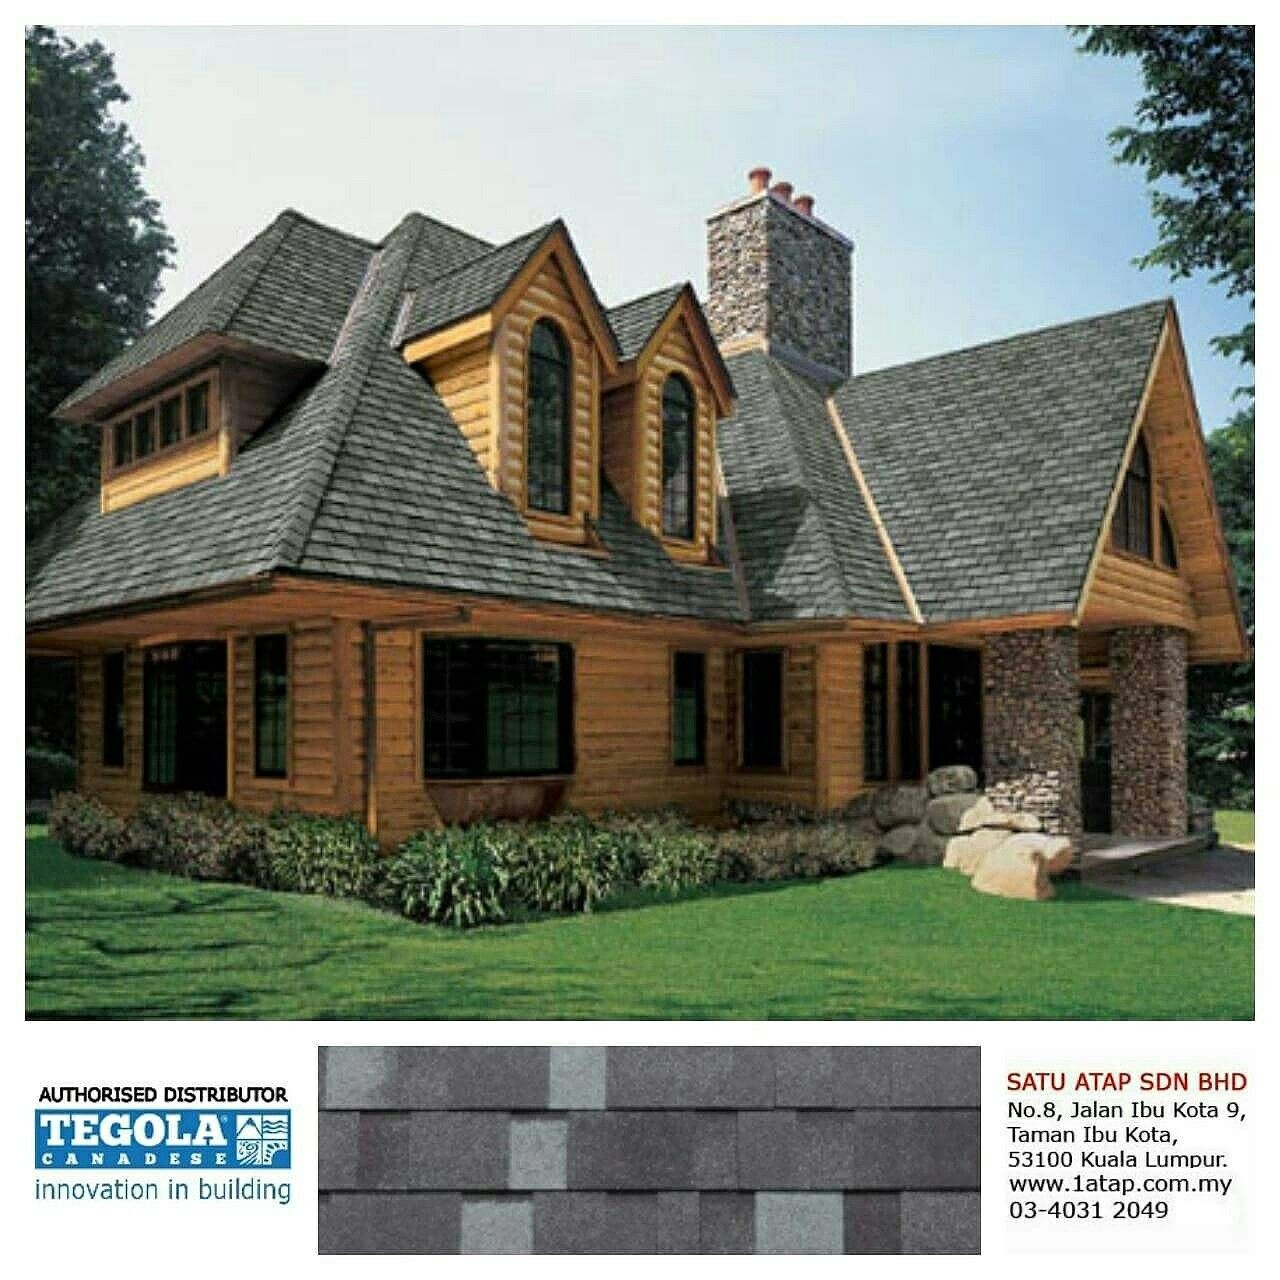 Tegola Master J Everything On A Single Roof These Are The Characteristics Of Any Tegola Canadese Roof Quality Ada Roofing House Exterior Cedar Shingle Siding